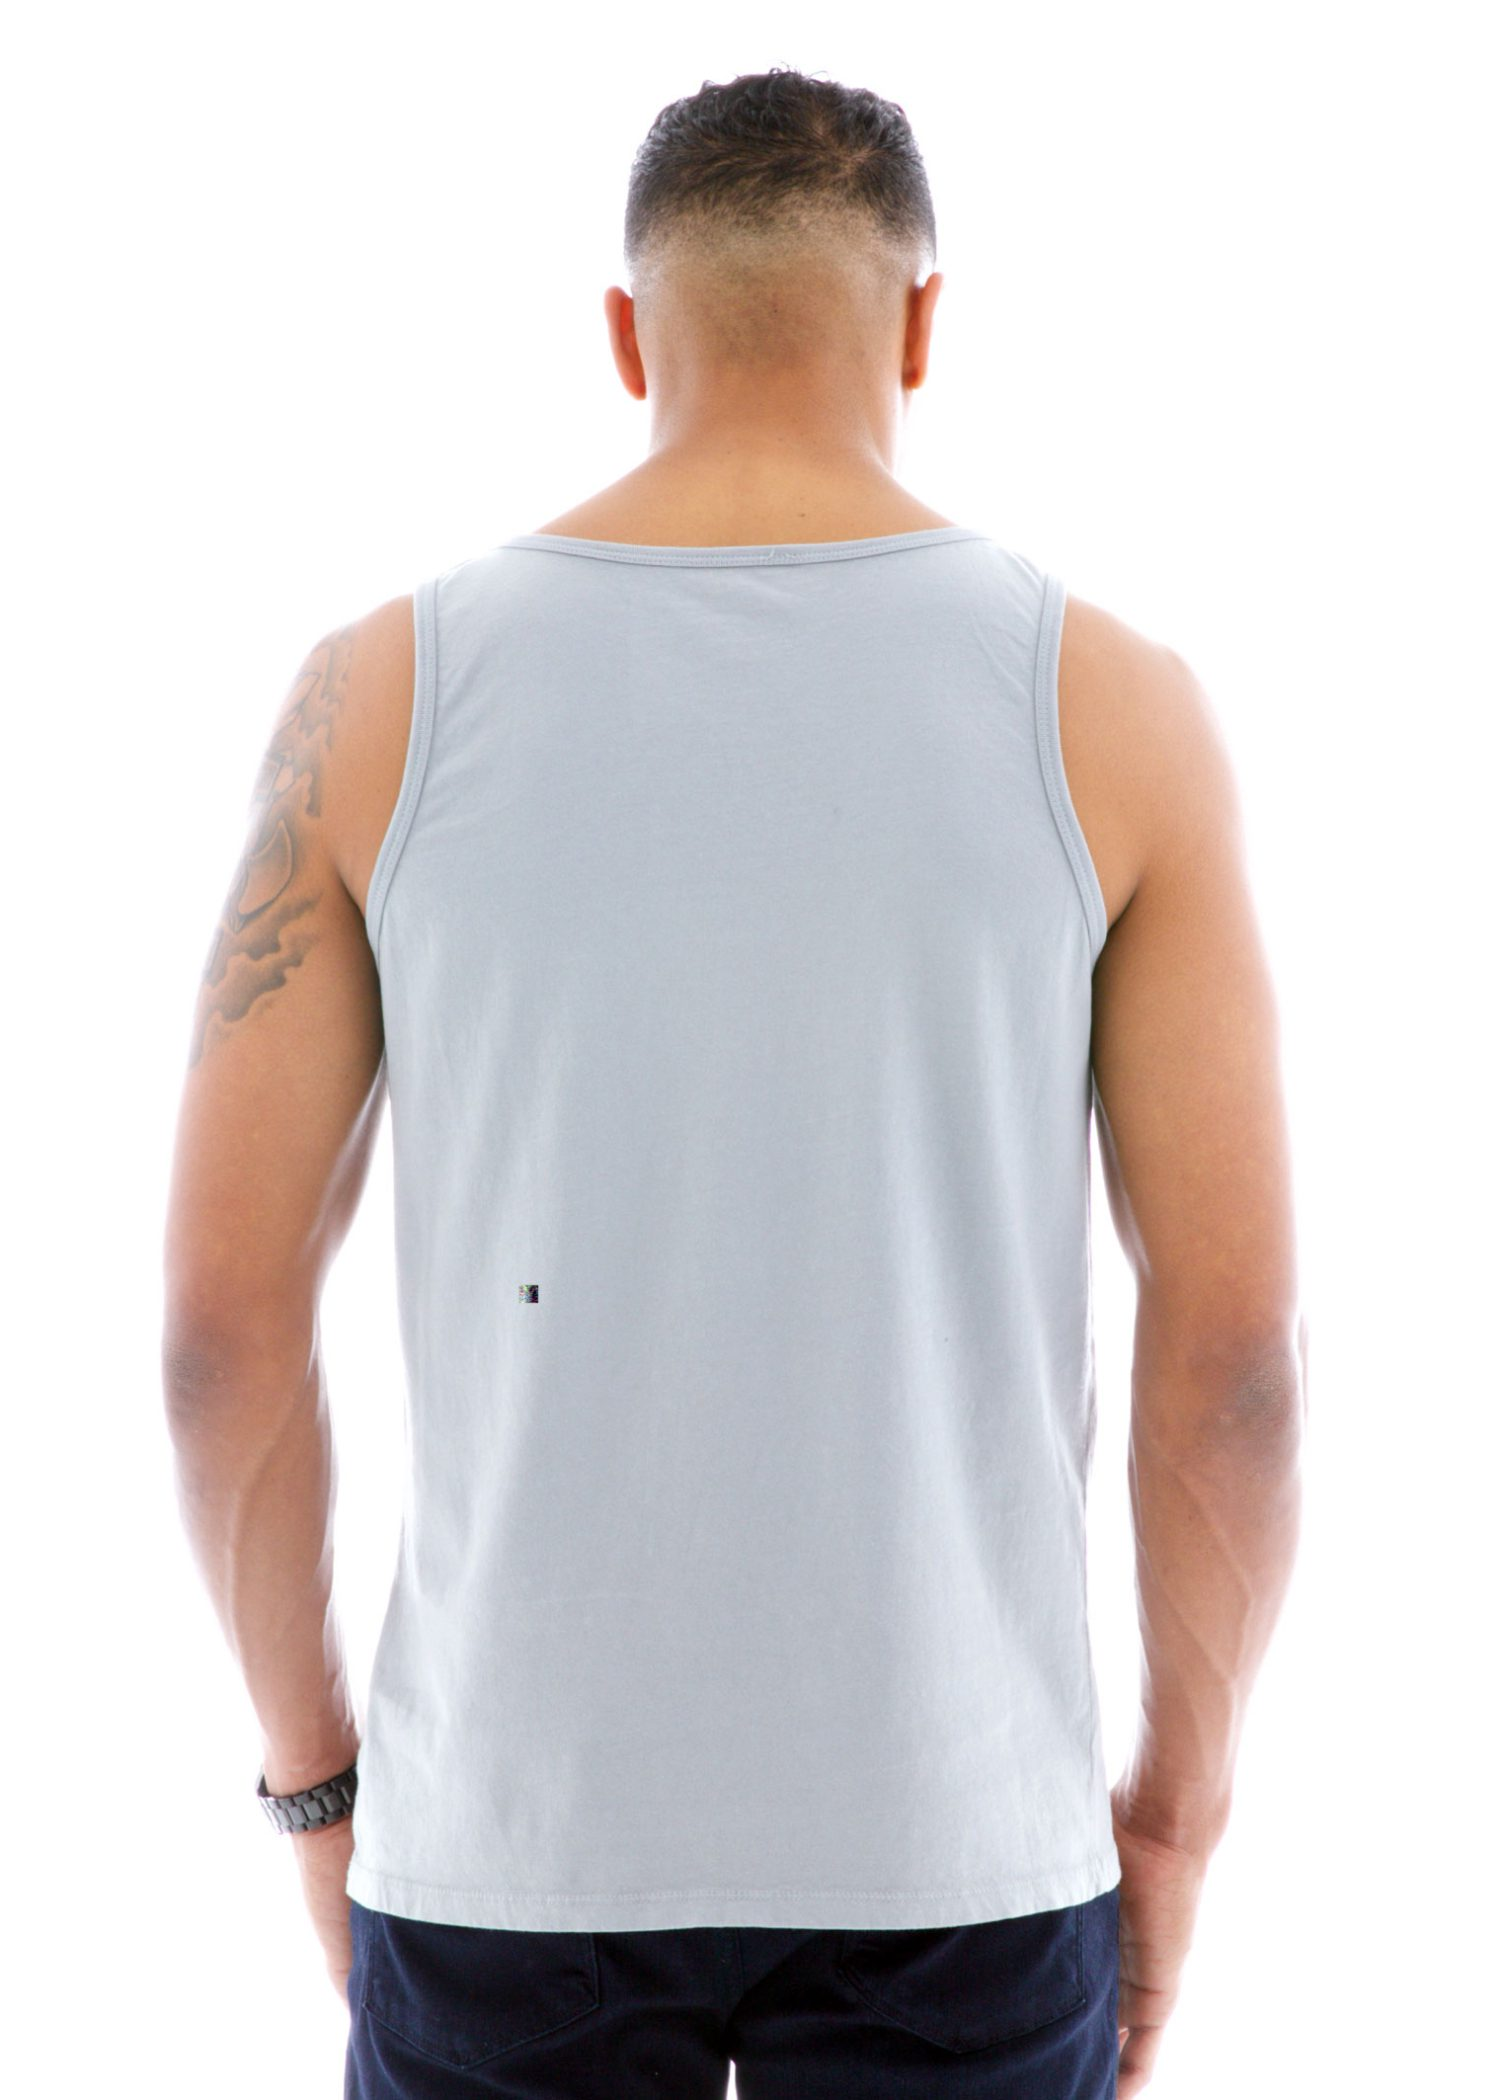 Jersey Tank Top Back View